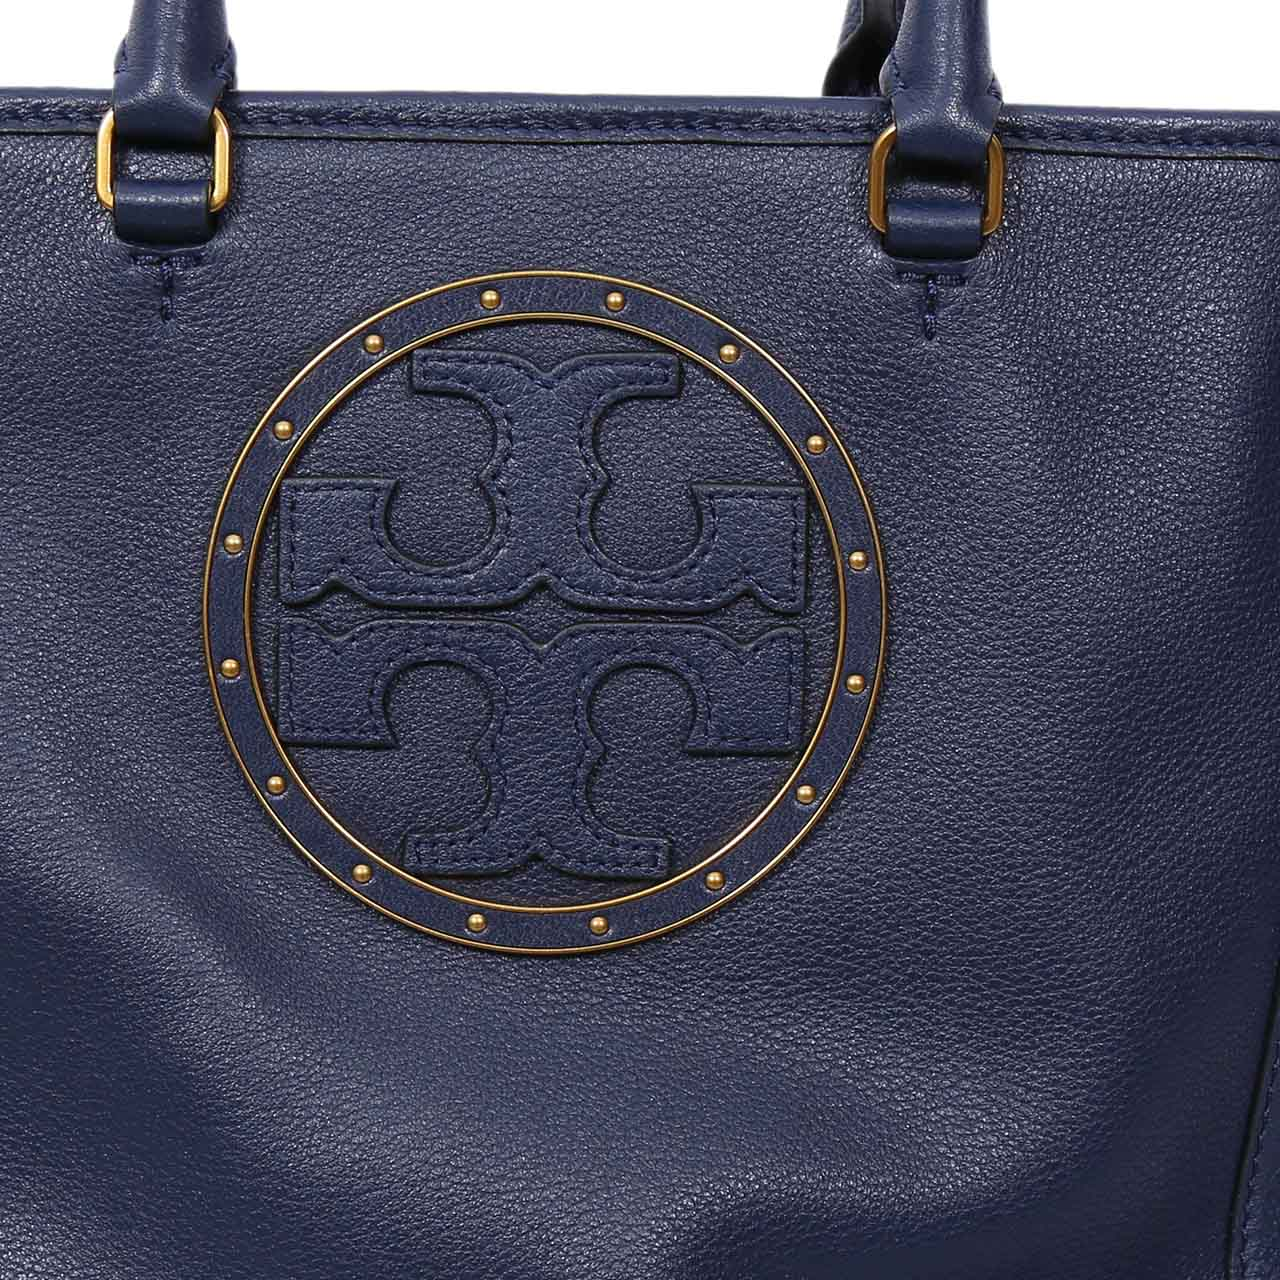 TORY BURCH STUD SMALL SATCHEL